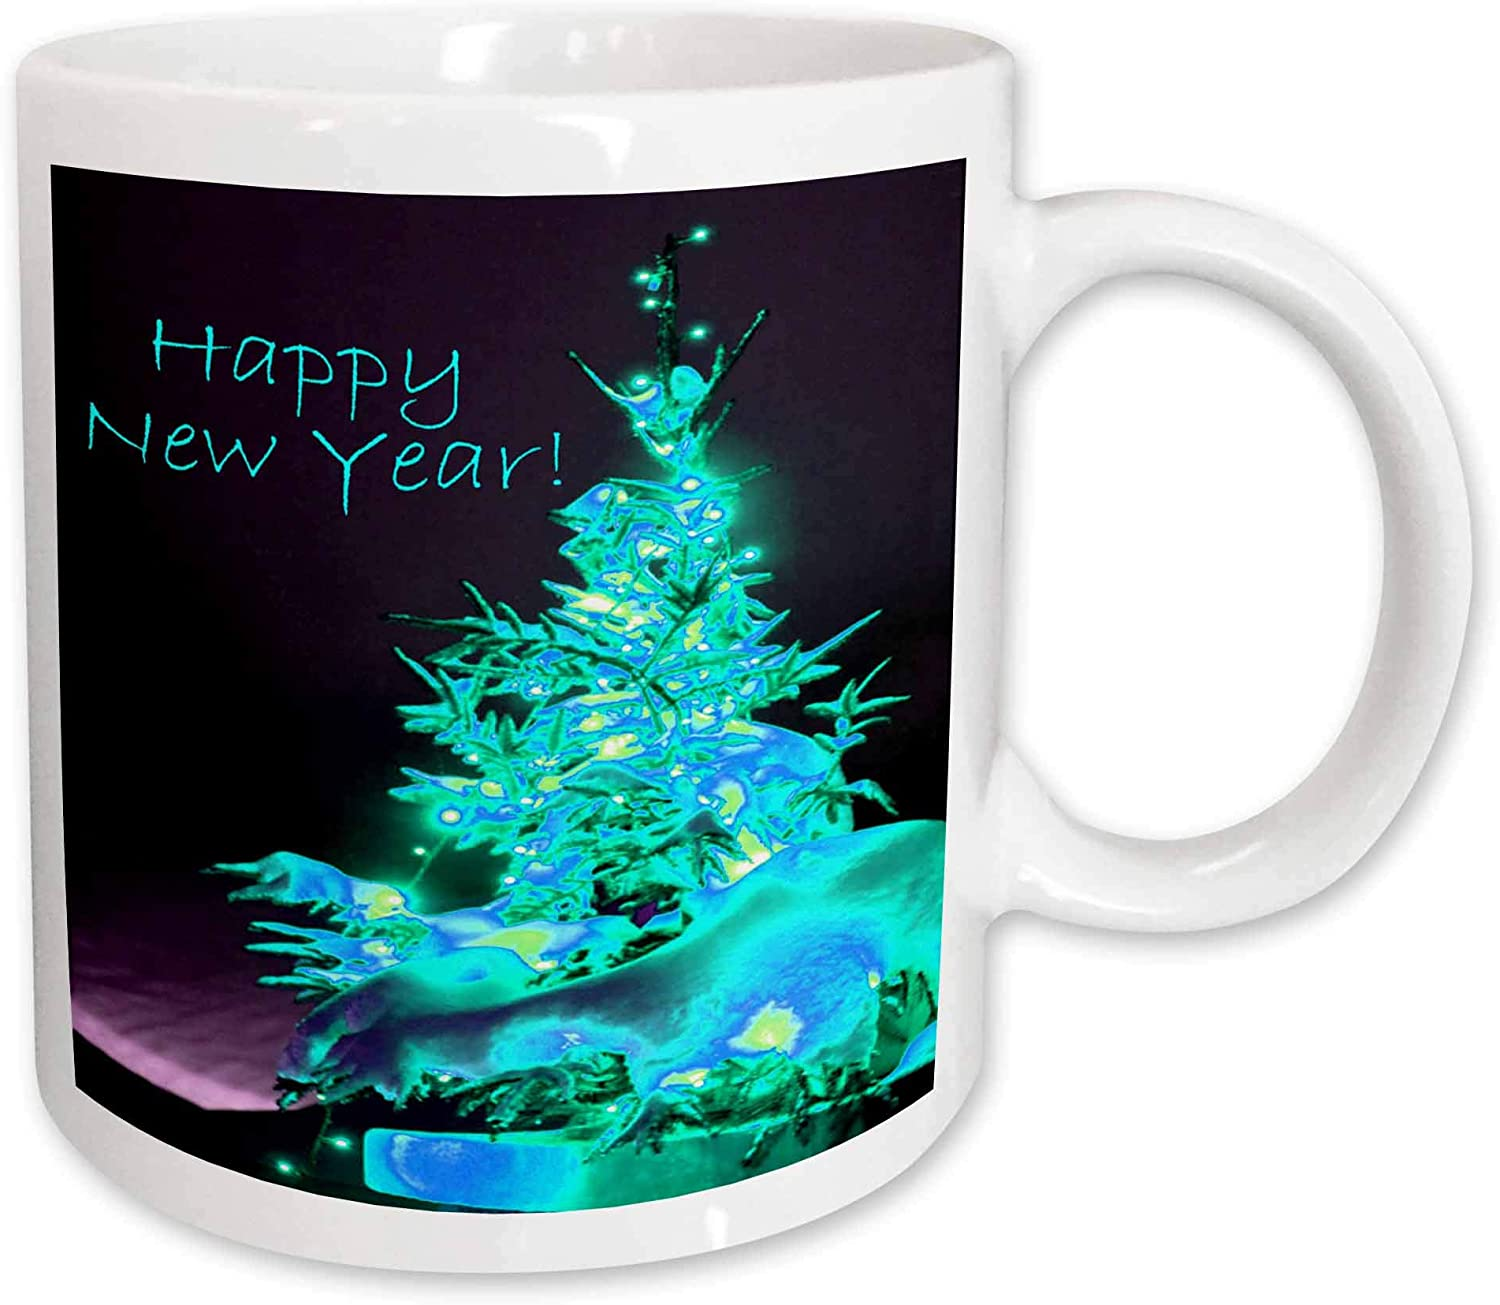 3dRose Pretty Christmas Tree Happy New Year in Ice Blue with Light Blue Text Ceramic Mug, 11-Ounce